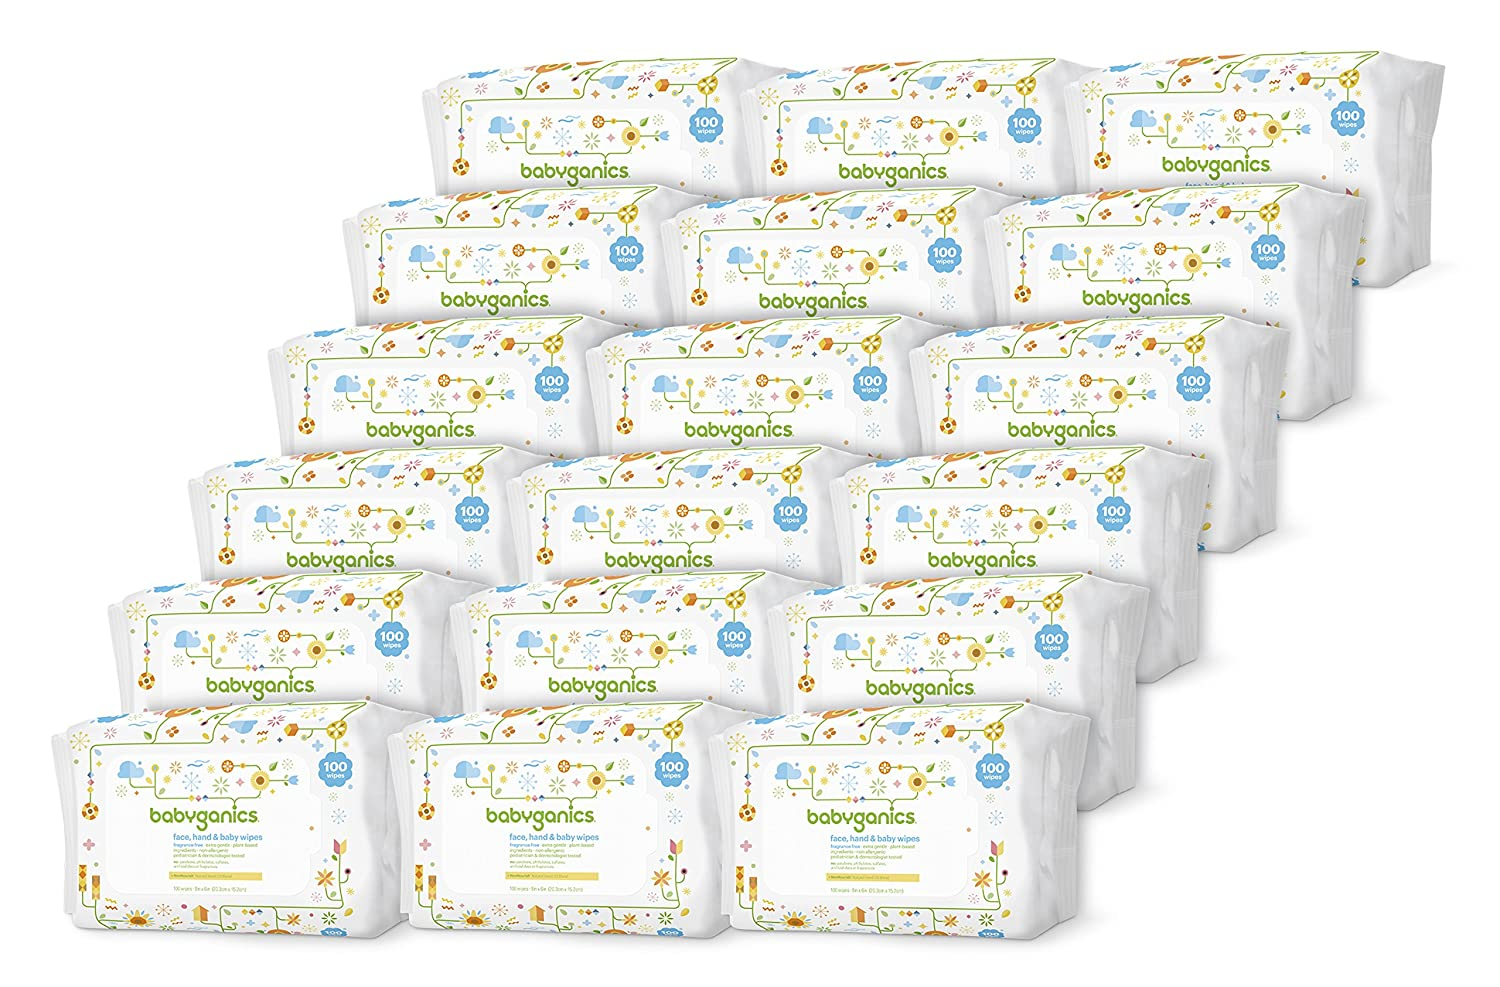 Babyganics Face, Hand and Baby Wipes, Fragrance Free, 600-Count (Contains Six 100-Count Packs), Packaging May Vary 4332515382